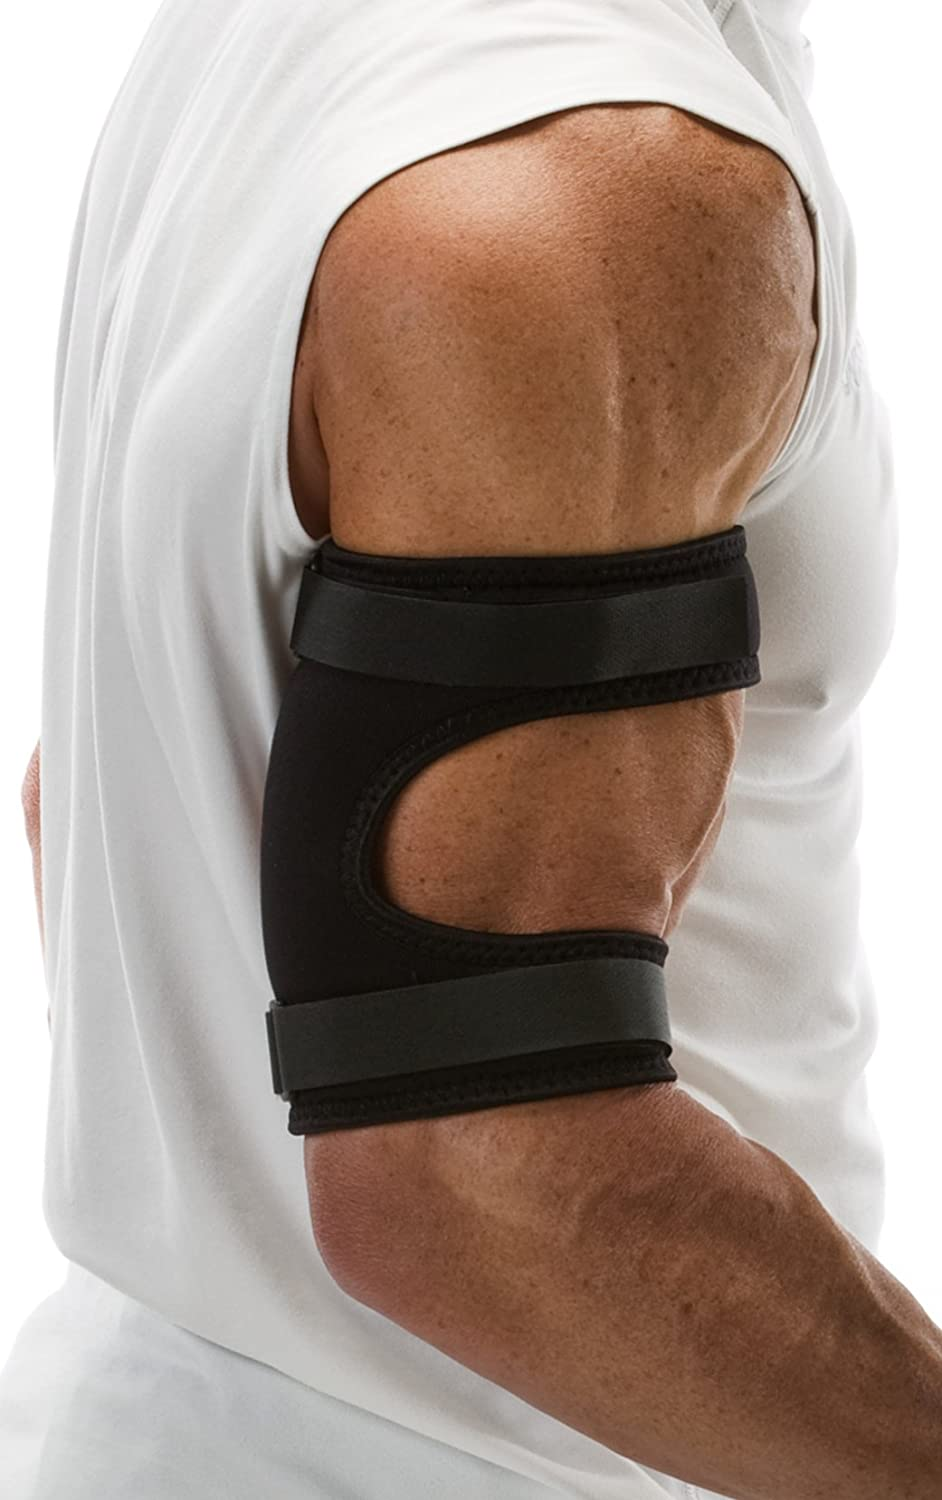 """Cho-Pat Bicep/Tricep Cuff - Eases and Prevents Bicep/Tricep Strain, Injury, and Pain (Bicep/Tricep Tendonitis, Pulling and Tearing of Tendons, Inflammation) - Large (11""""-12.5"""")"""